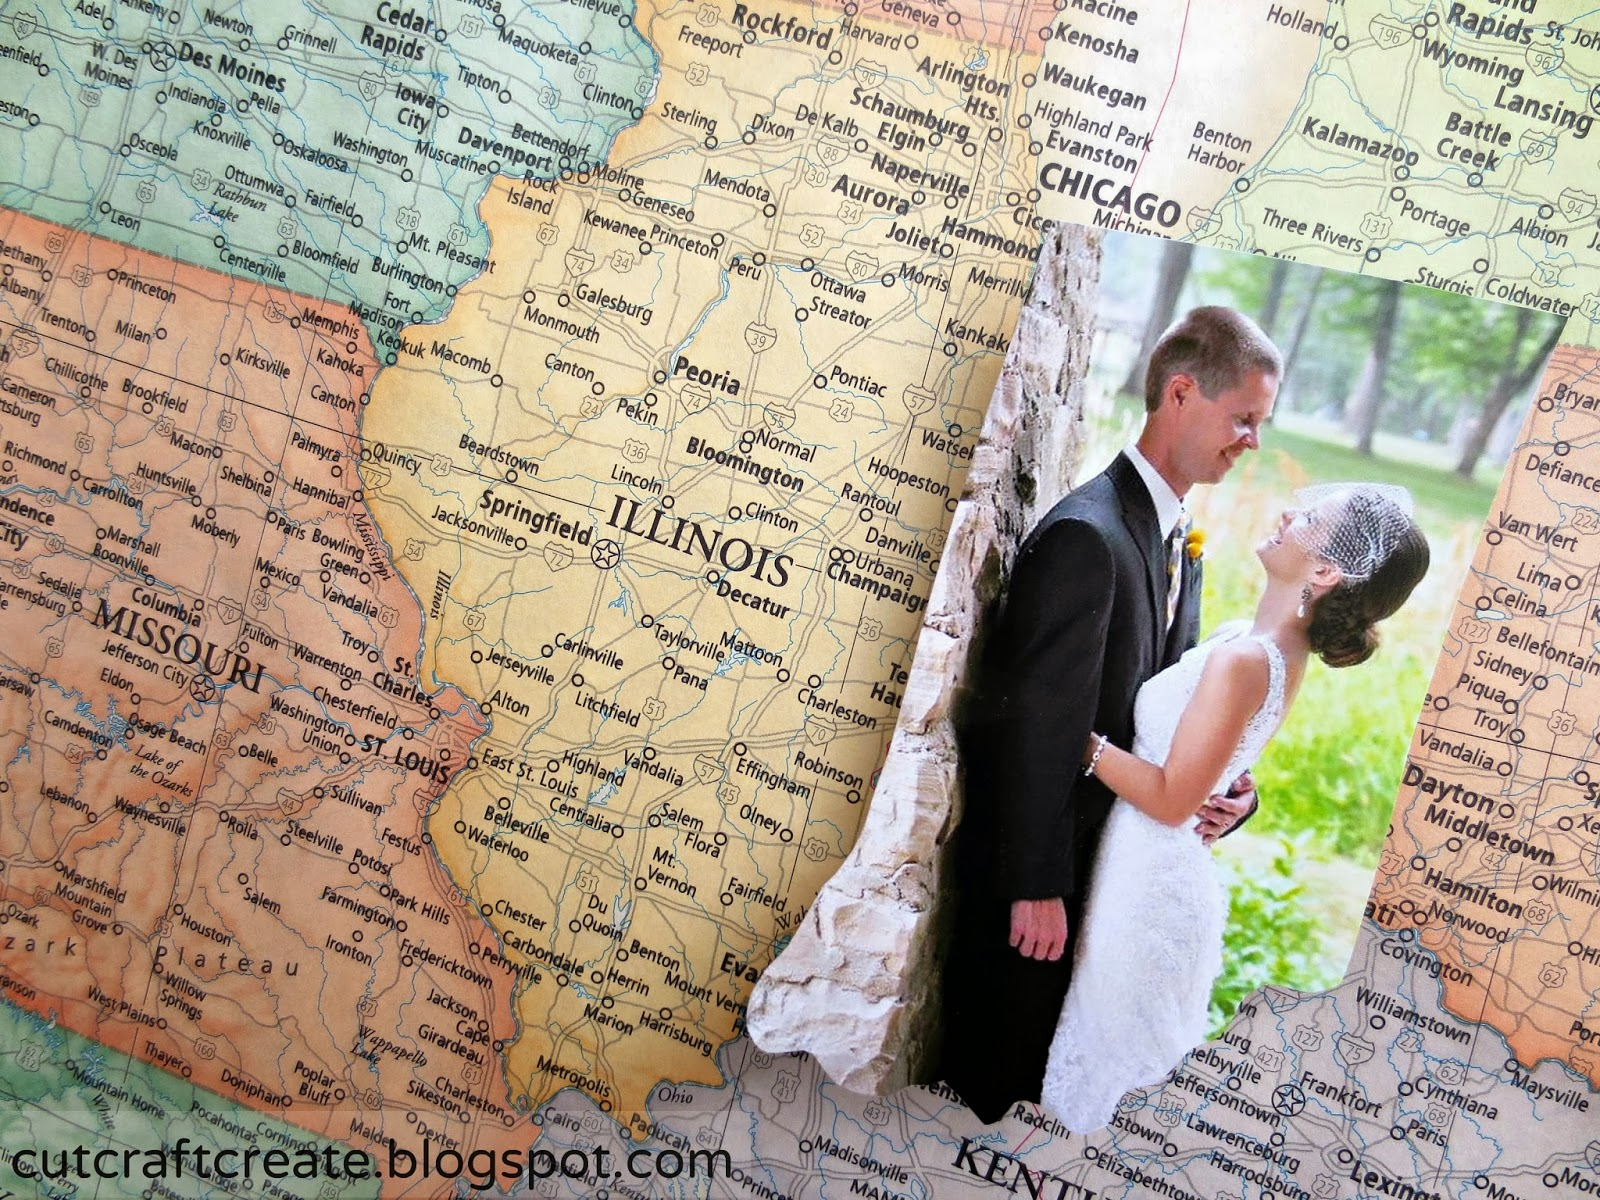 Cut Craft Create Personalized Photo Map for our Paper Anniversary